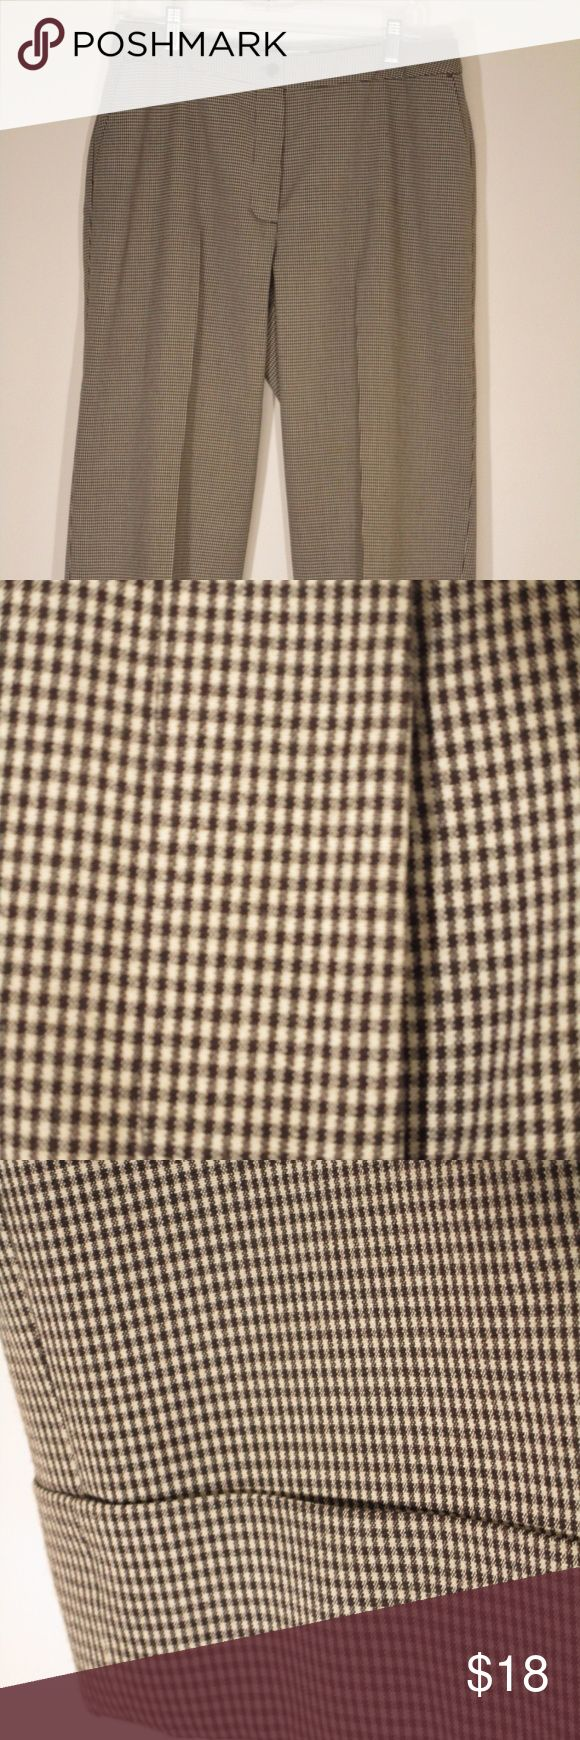 NWOT Chicos Size 2 Capri Pants Brown Gingham NWOT Chicos Size 2 M-L Womens Capri Pants Career City Shorts Brown Gingham Check - Never Worn - EUC Chico's Pants Ankle & Cropped